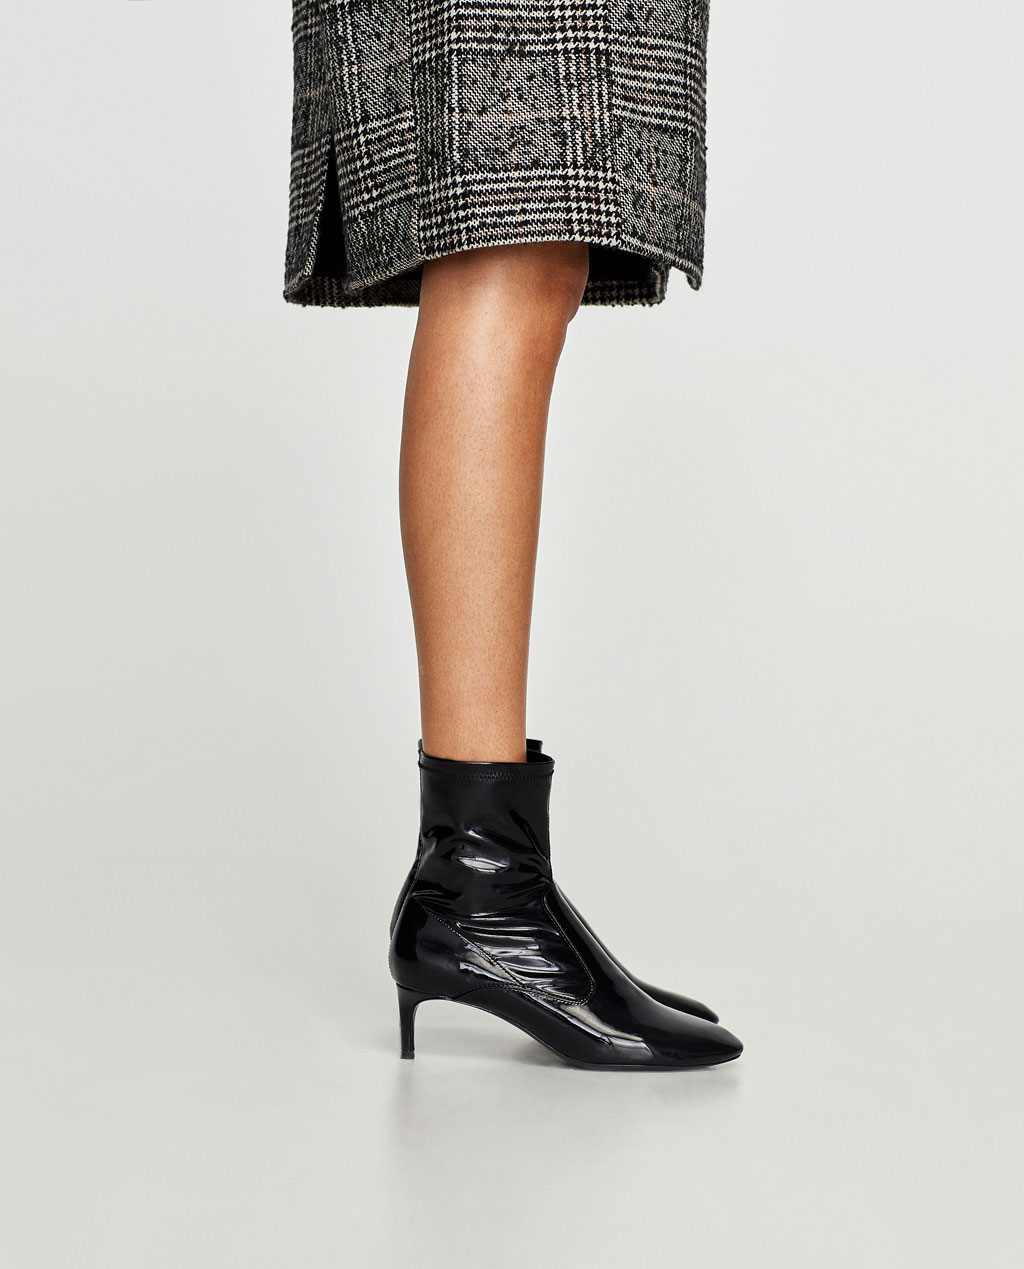 Trendwatch: Sock Boots